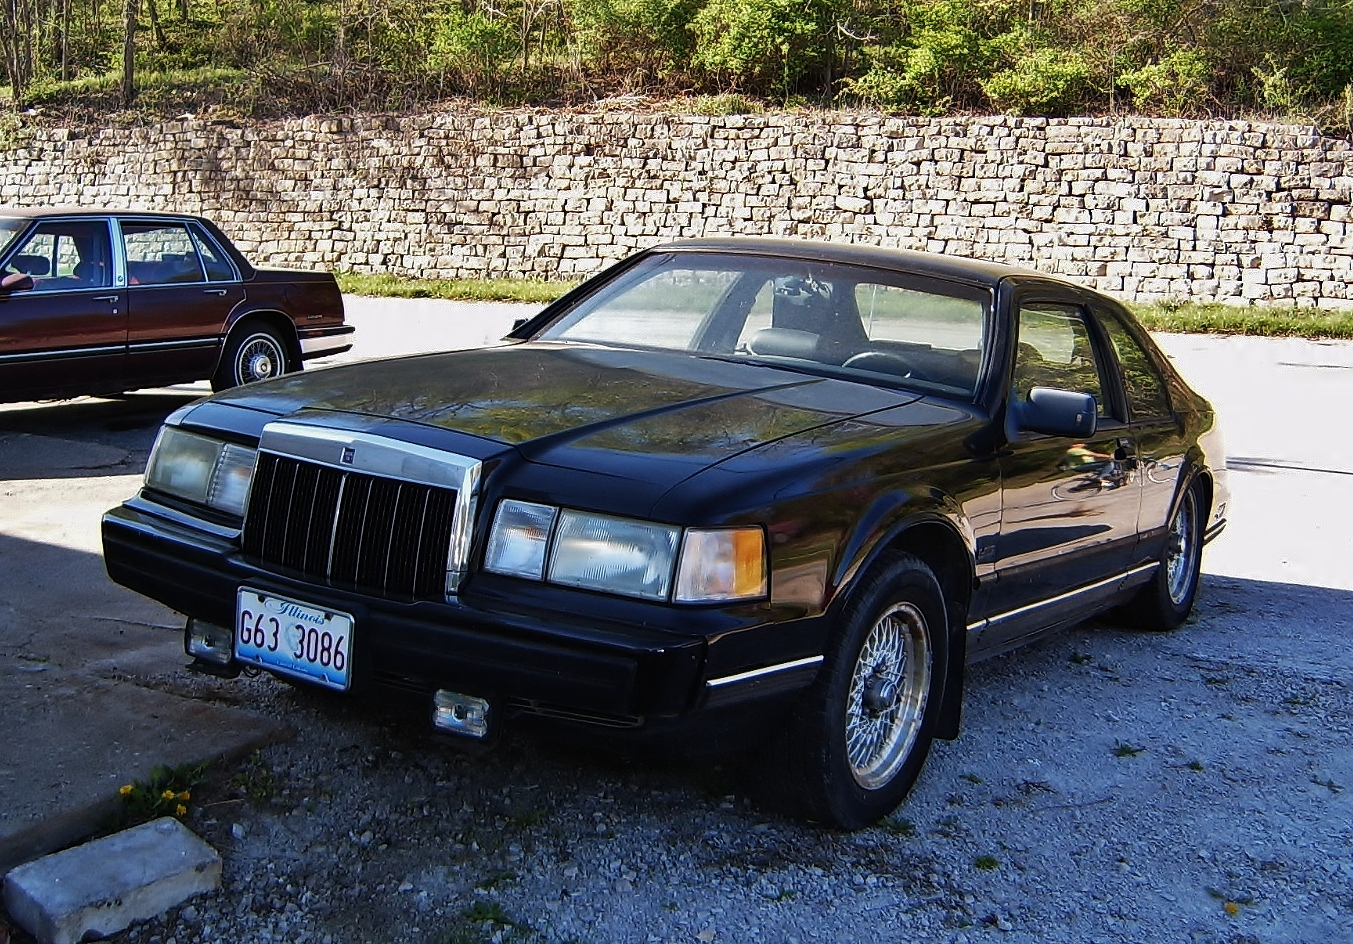 1990 Lincoln LSC for Sale http://www.curbsideclassic.com/curbside-classics-american/1990-92-lincoln-mark-vii-lsc-se-not-your-uncle-maxs-mark/